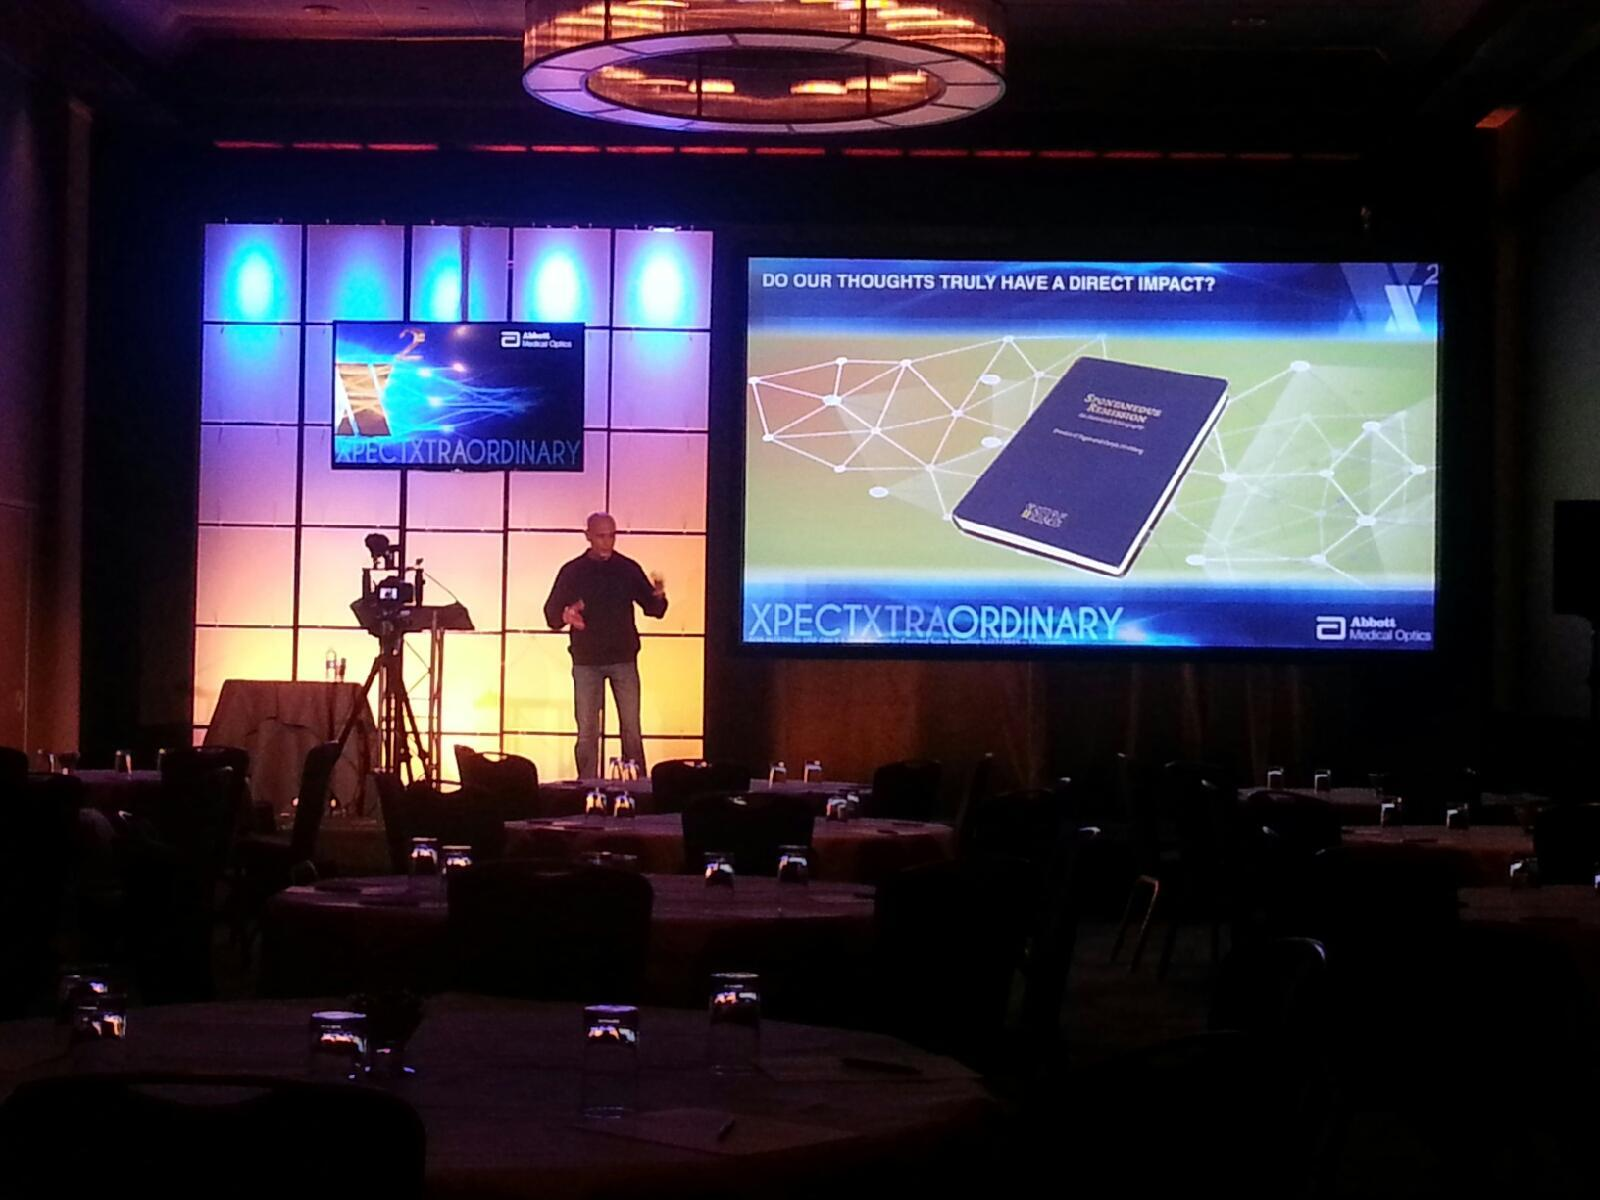 Plexiglass Decor, Projection Screen, Videopgraphy and Audio - Lake Tahoe California